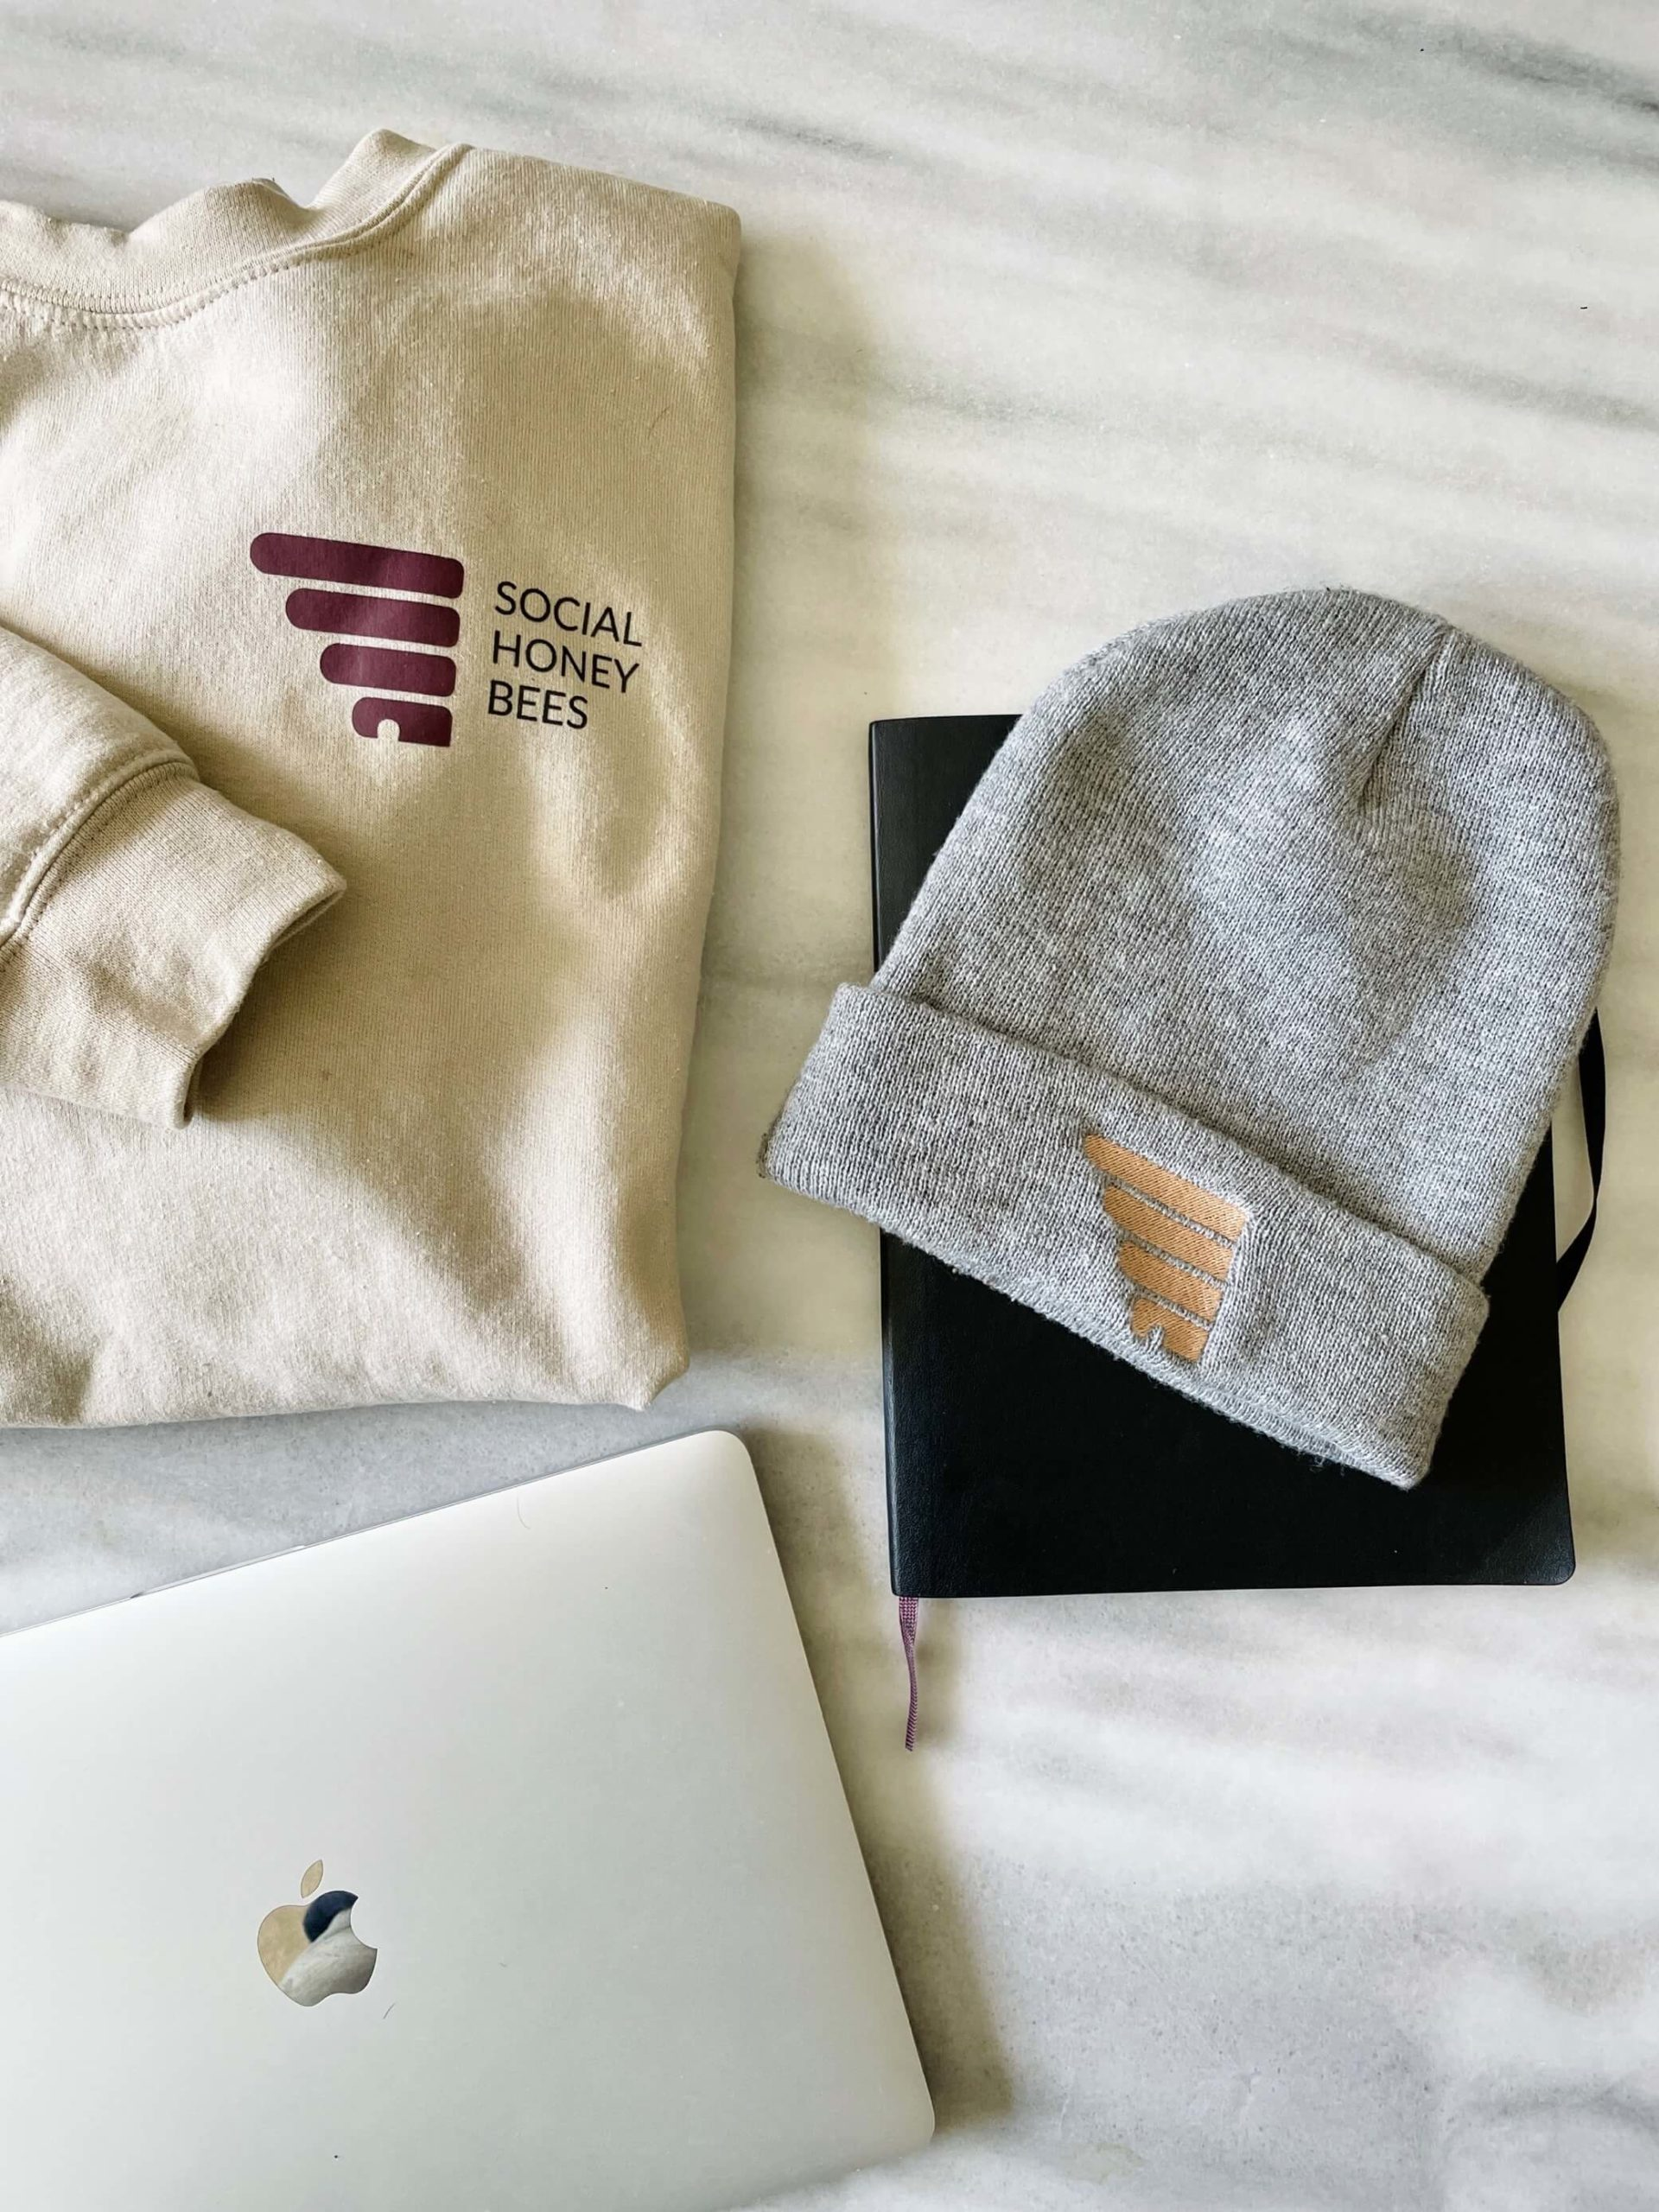 Social Honey Bees sweater toque and macbook pro